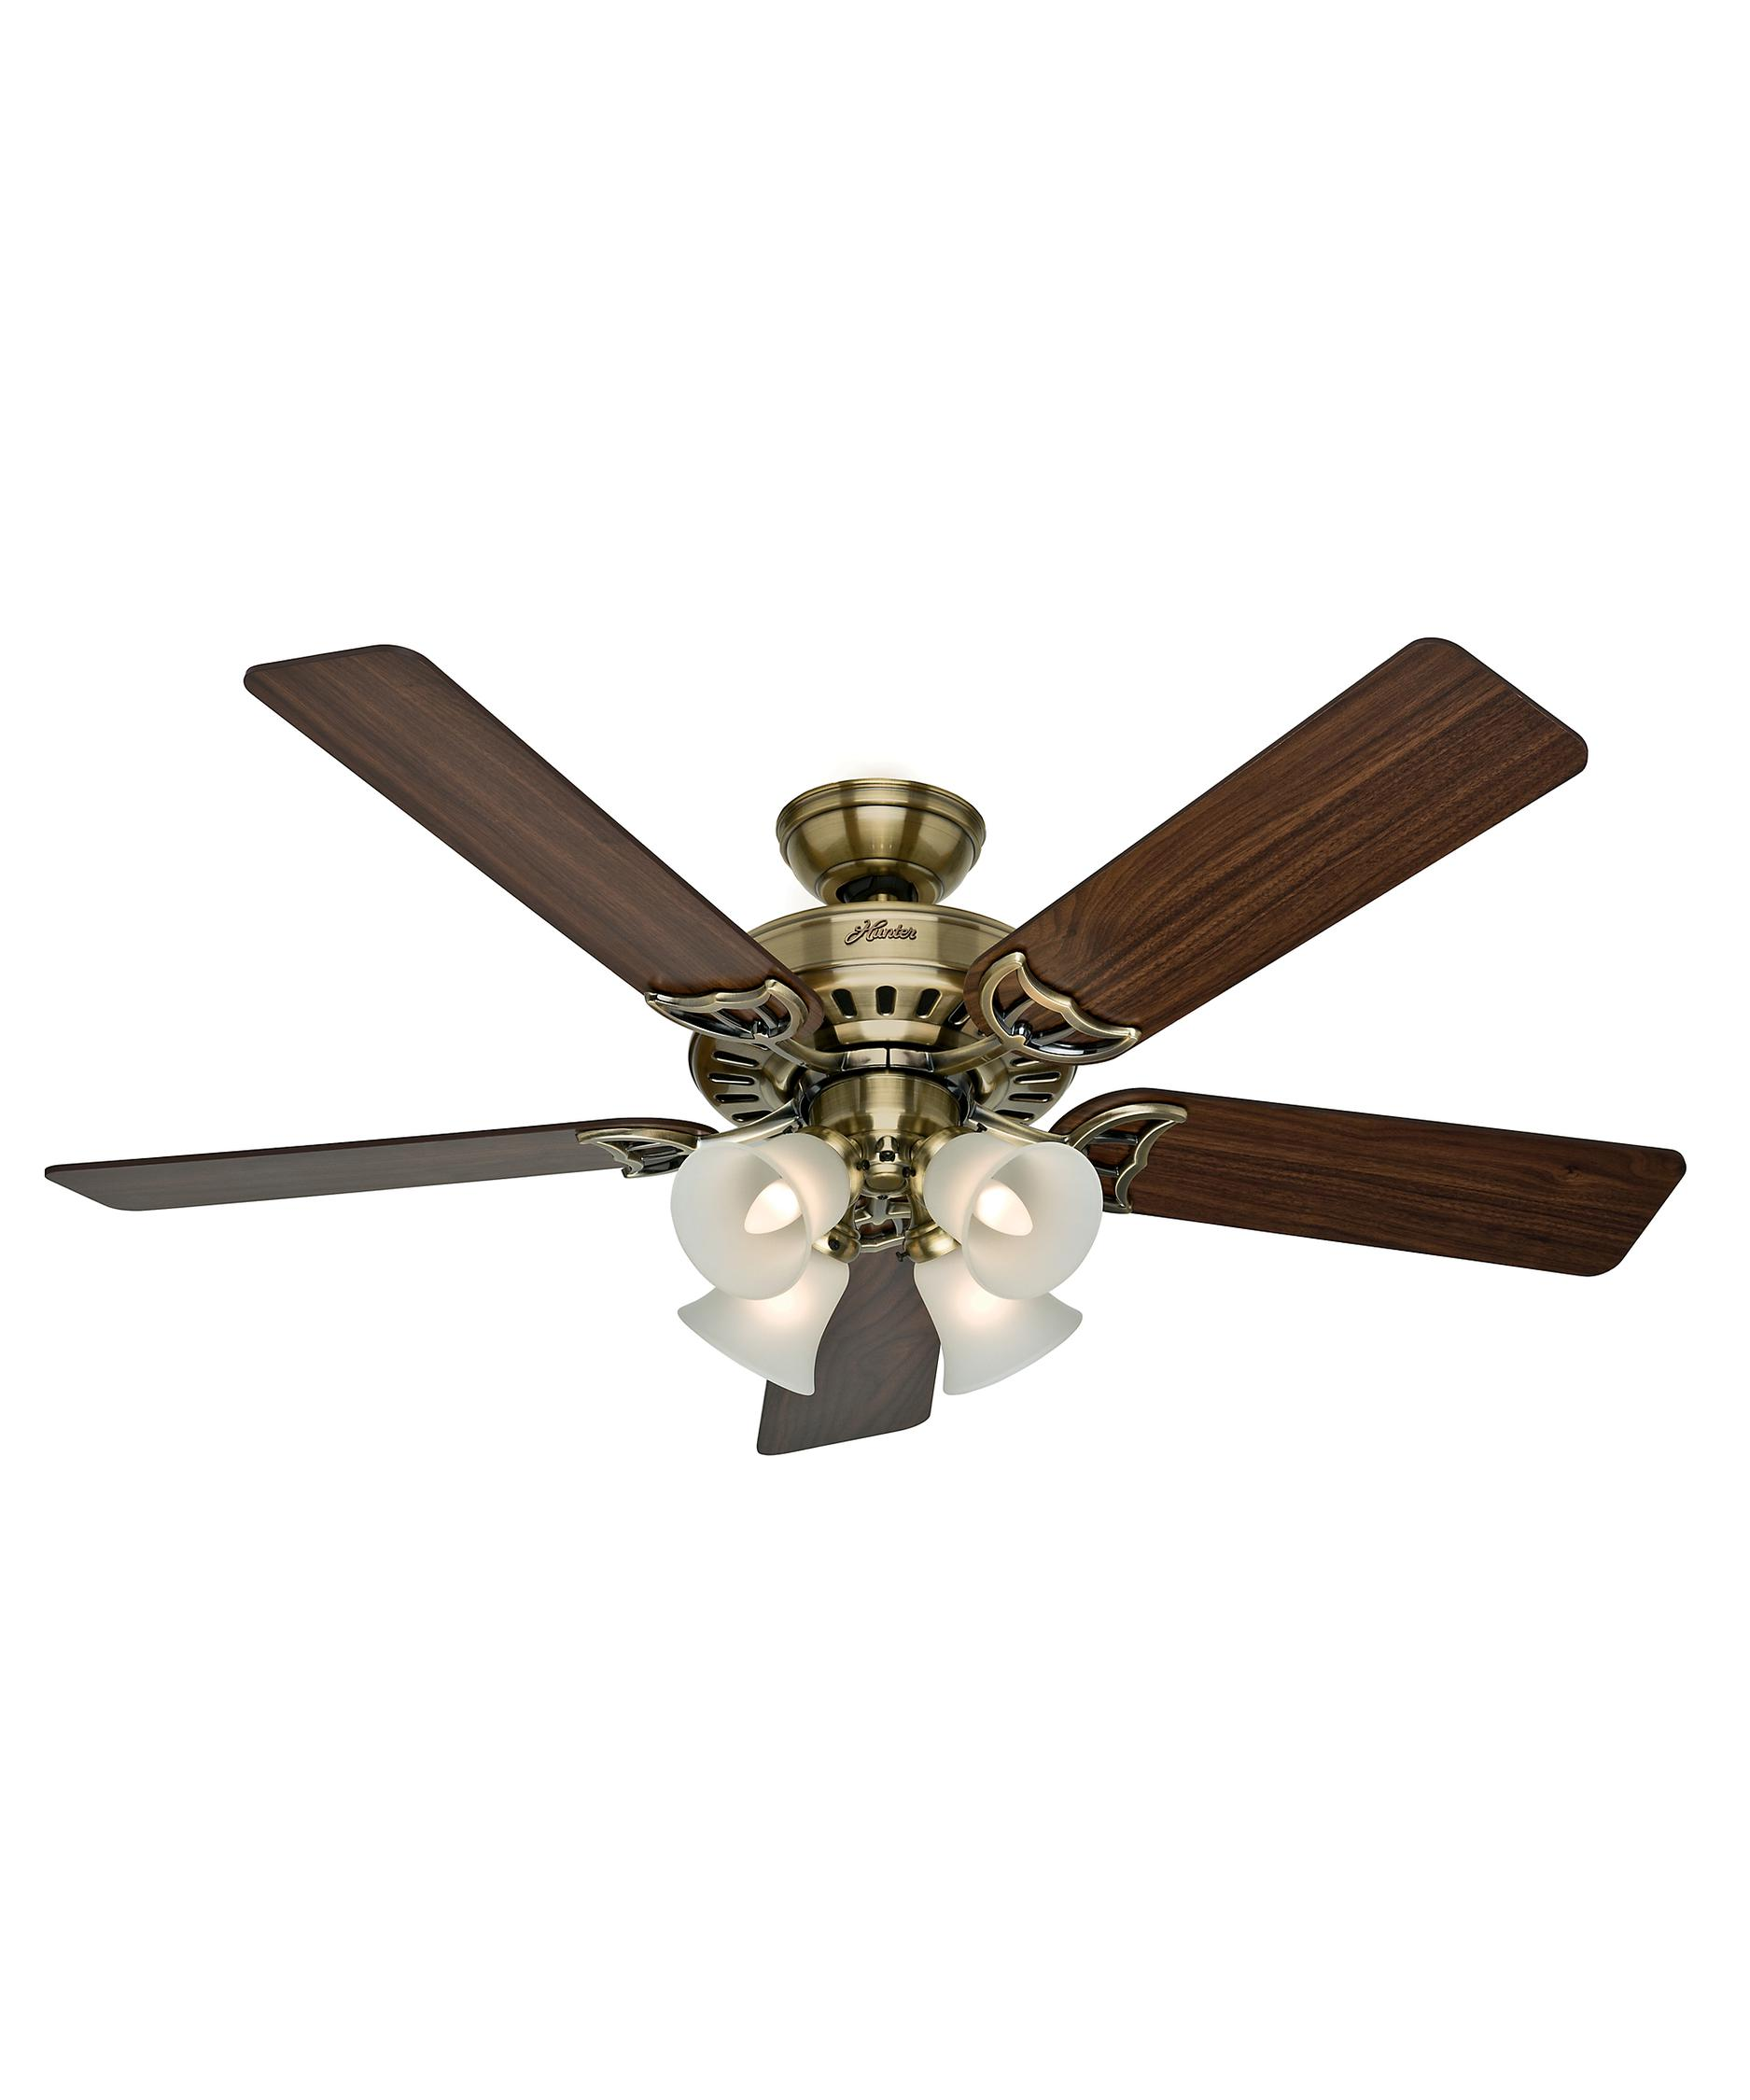 Hunter Fan 53063 Studio Series 52 Inch Ceiling Fan With Light Kit : Capitol Lighting 1 ...